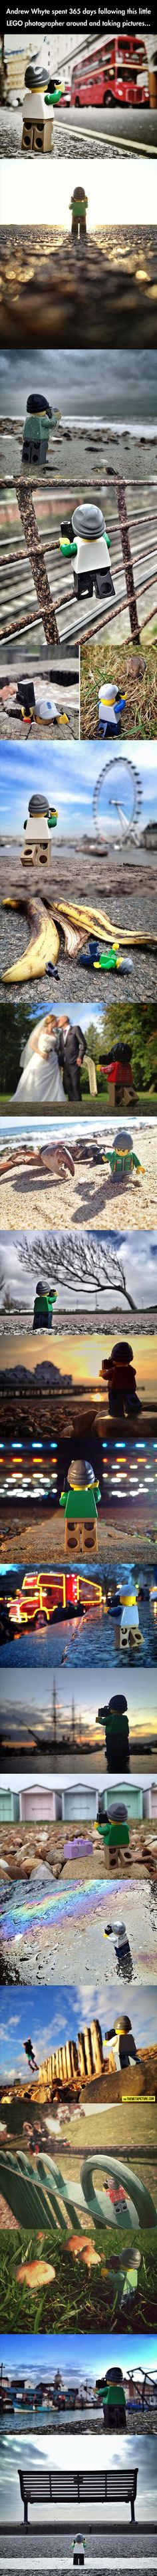 LEGO Photographer Travels The World